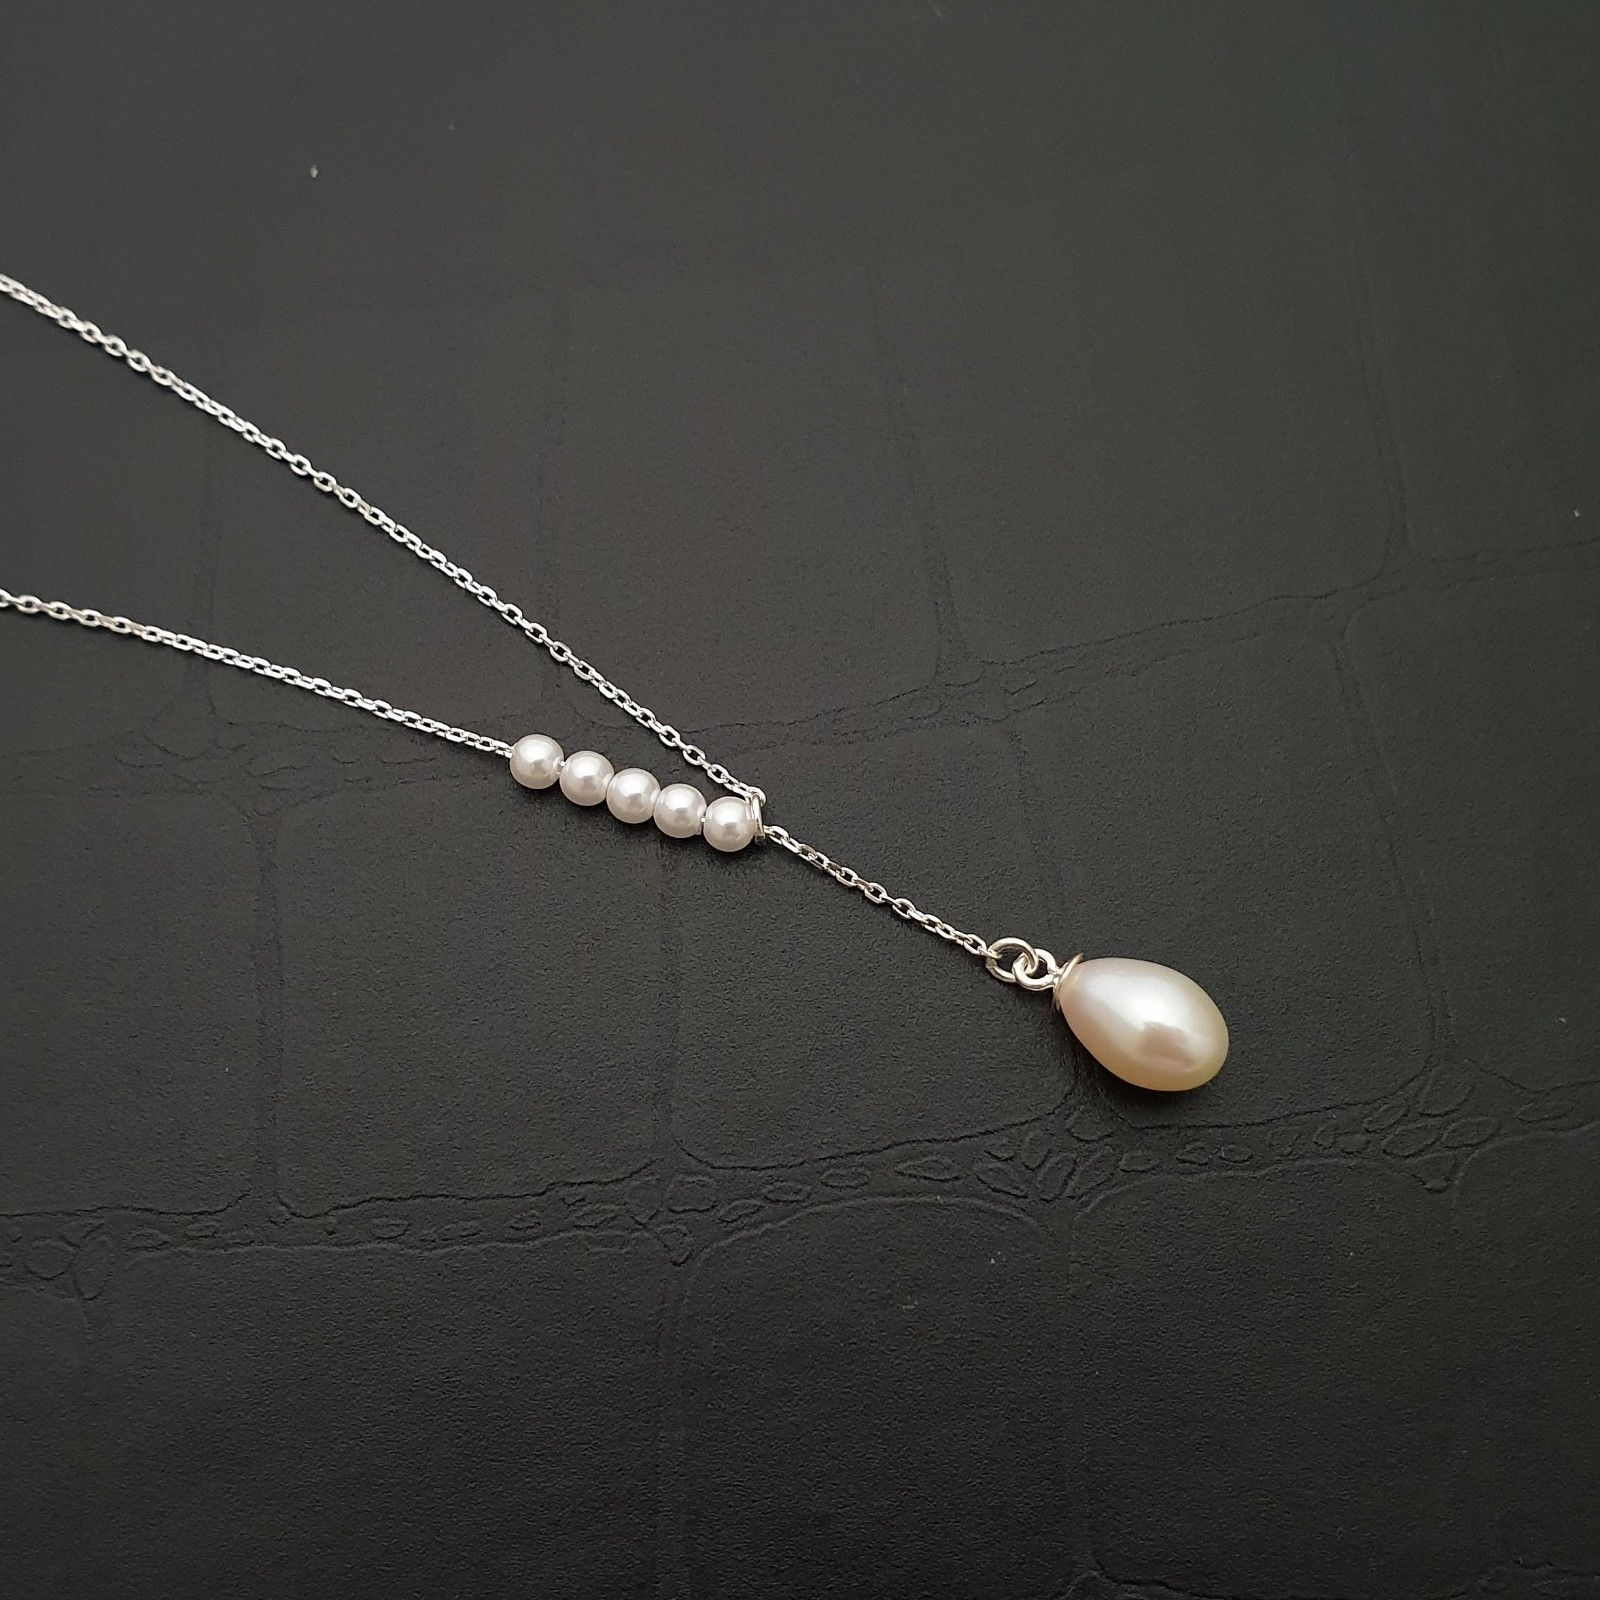 Oval Fresh Water Pearl  Movement Pendant Choker Necklace 925 Sterling Silver